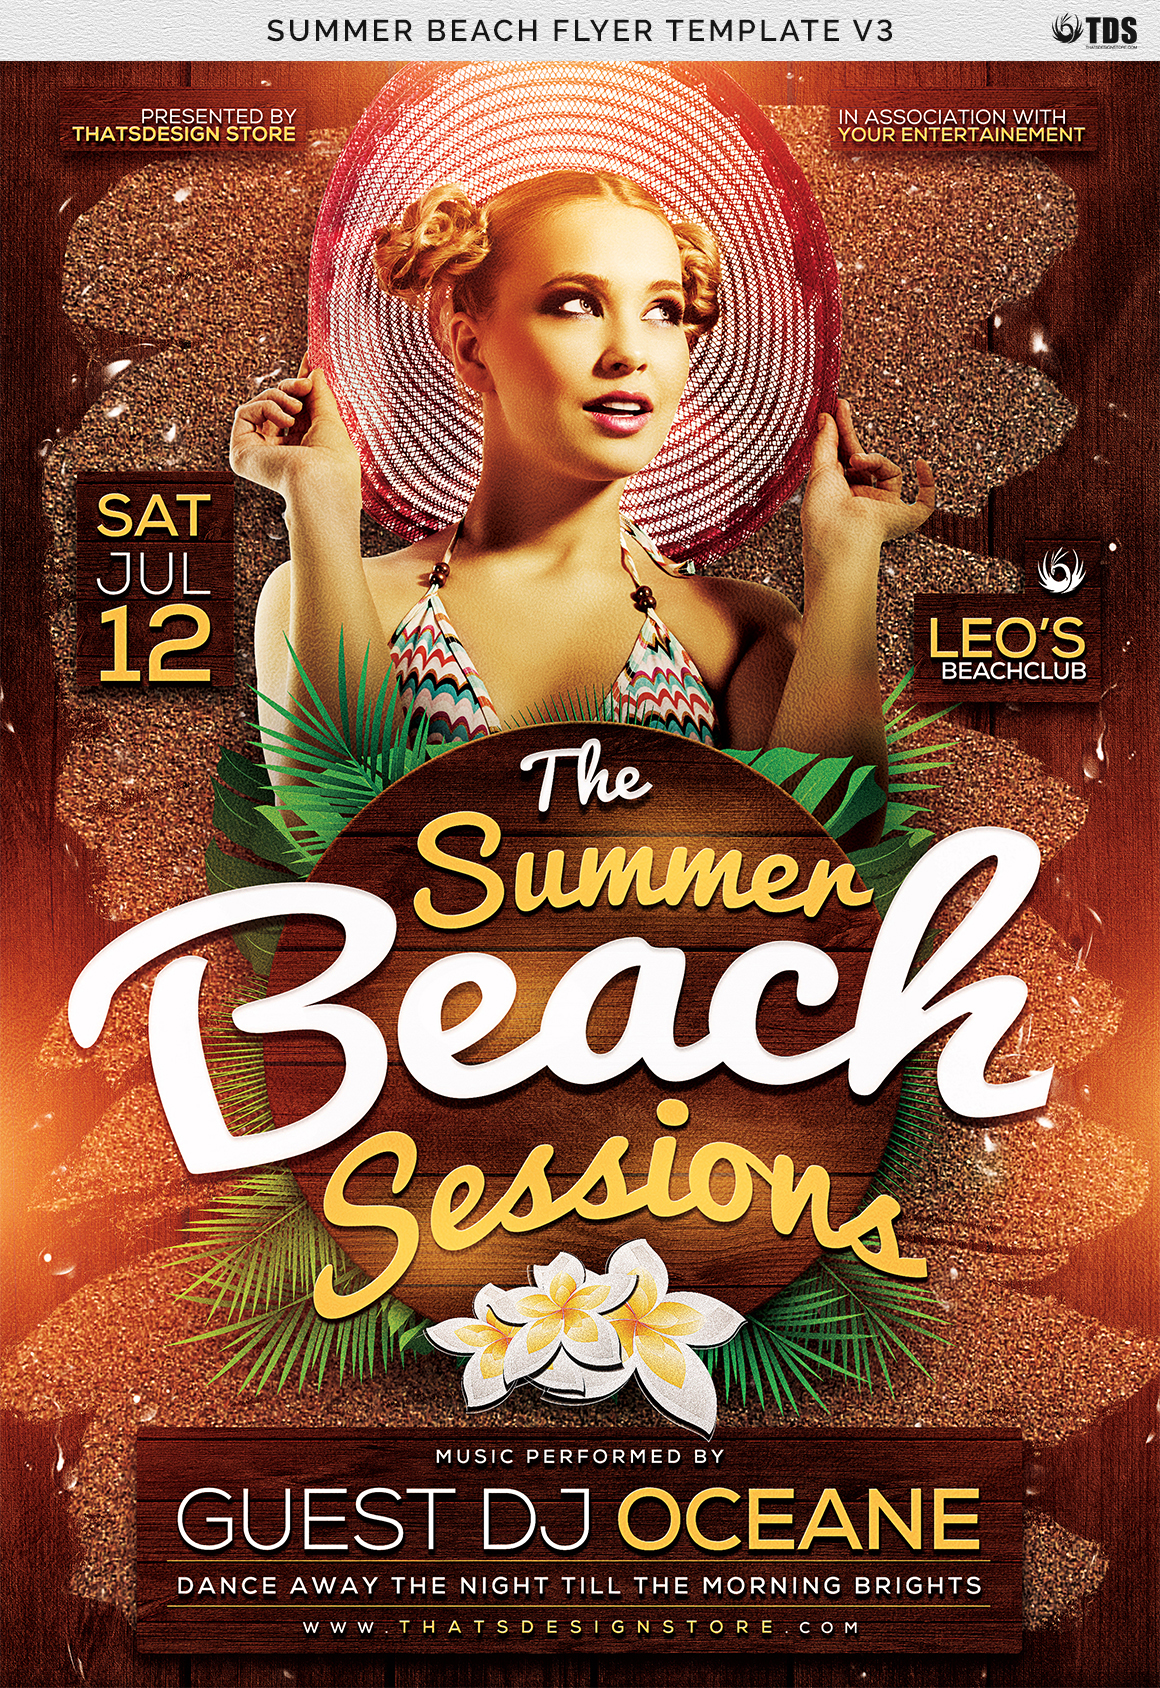 Summer Beach Flyer Template V3 example image 7